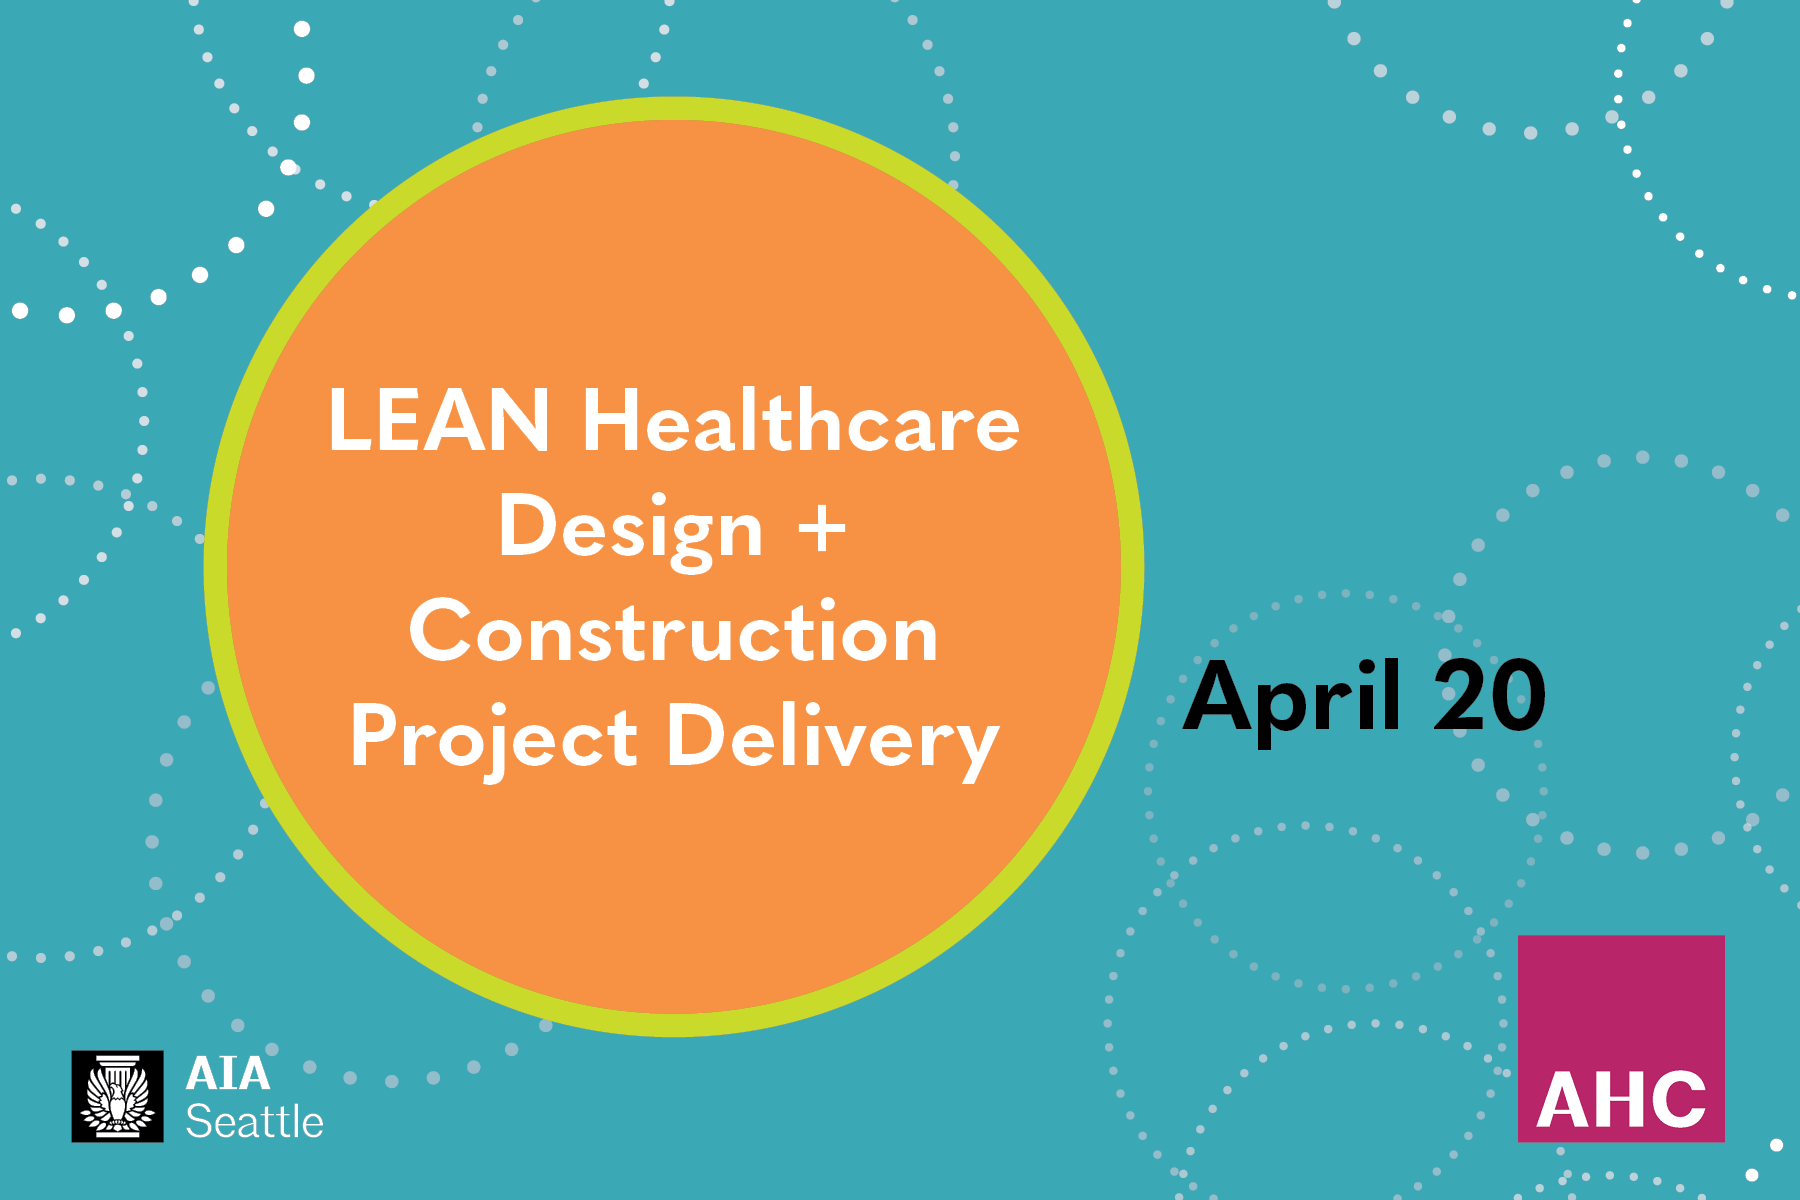 This page is intended only for participants of LEAN Healthcare Design + Construction Project Delivery with AHC